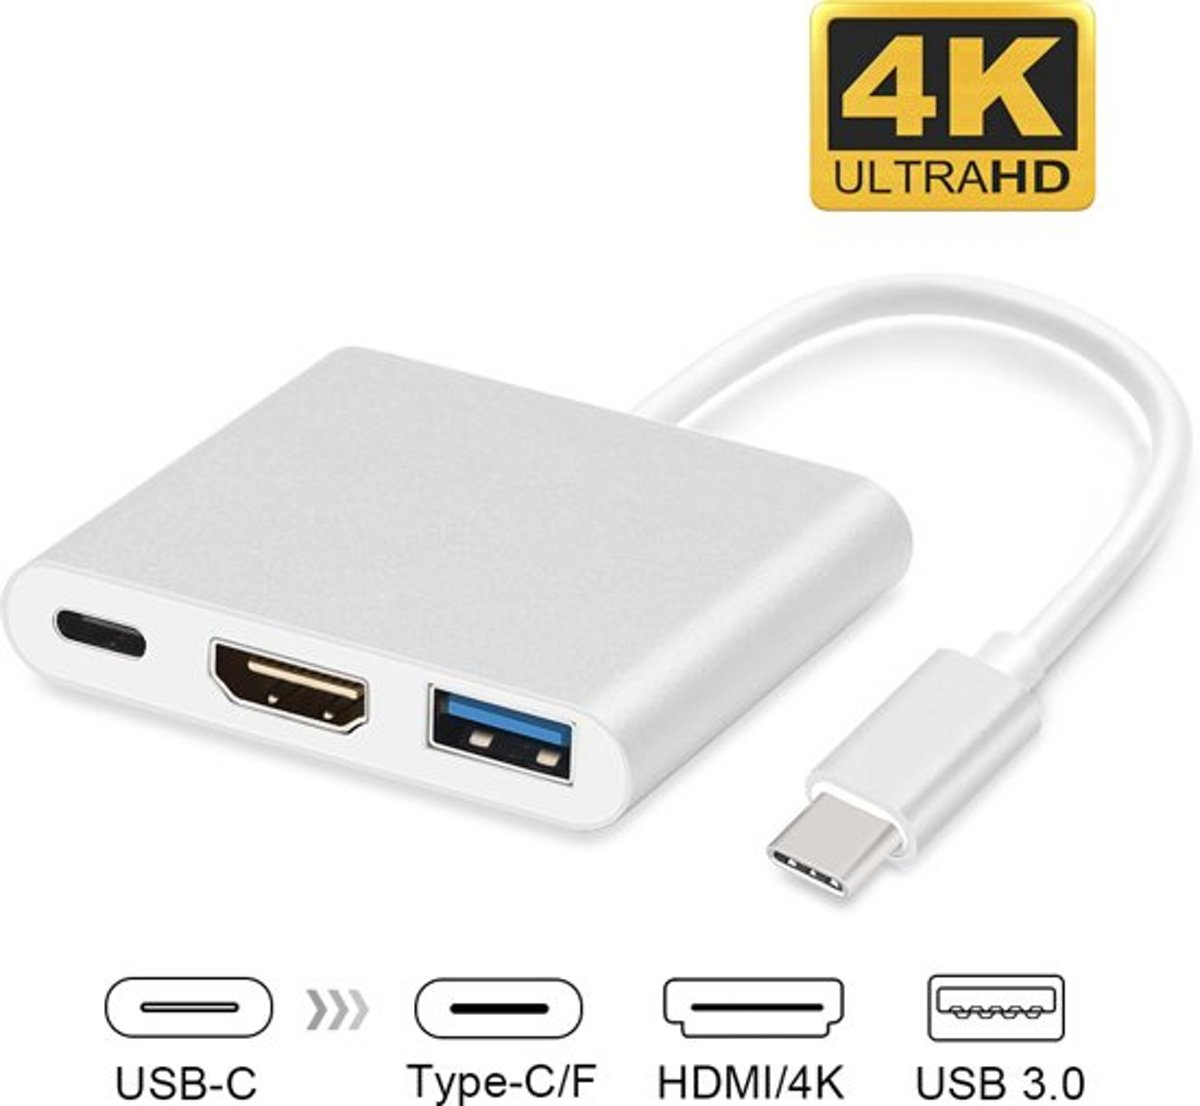 USB-C adapter voor Macbook met USB, HDMI, USB-C - Geschikt voor Macbook / Chromebook / HP Spectre - Windows / Mac OS Laptop / Ultrabooks / Notebook - Multipoort - Zilver